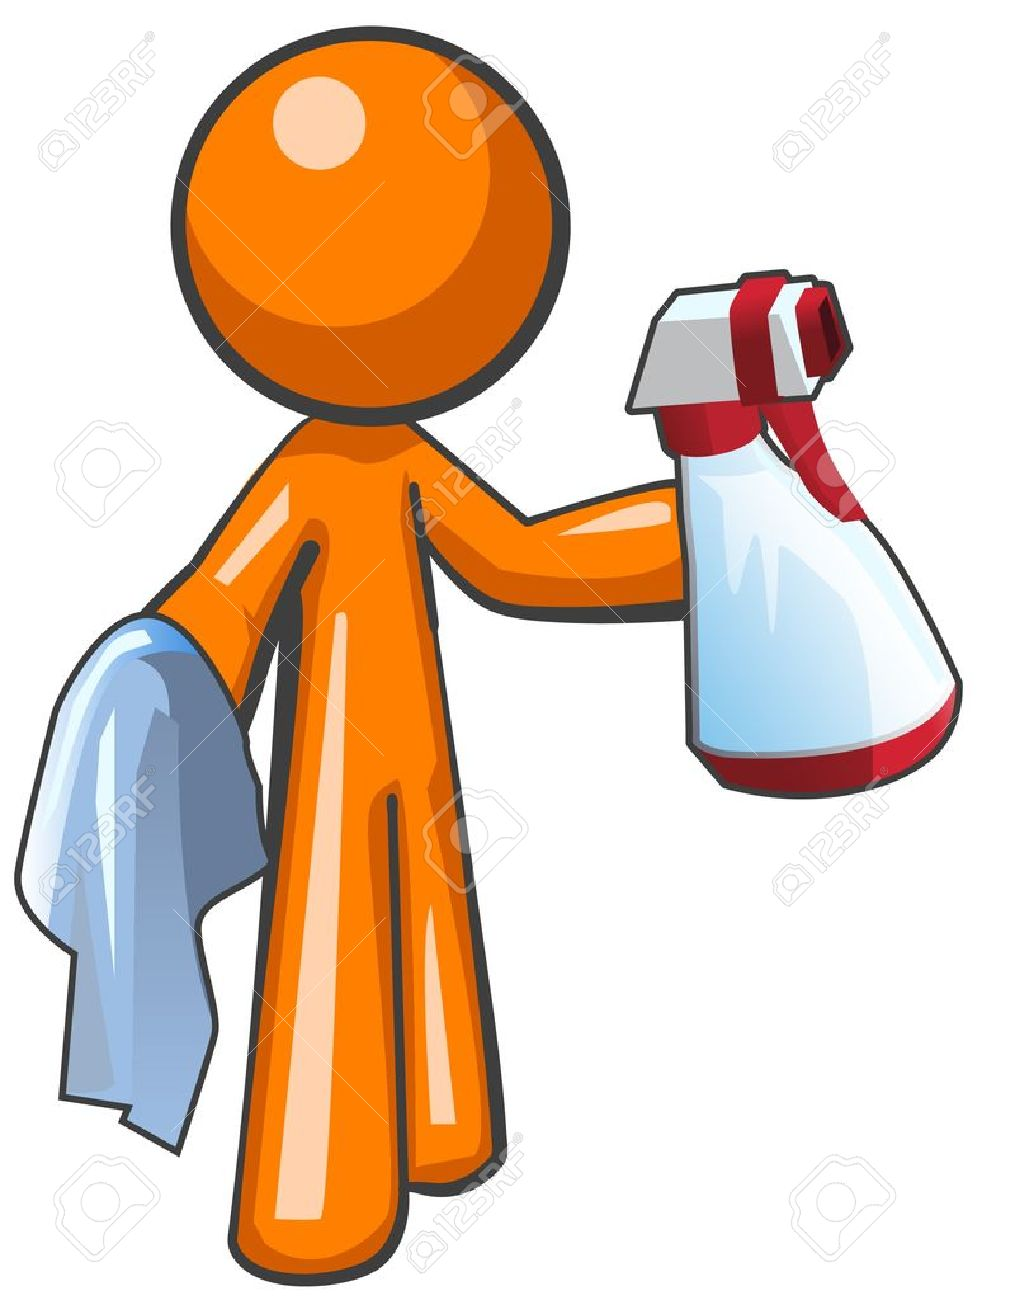 Orange Man With A Sanitation Spray Bottle And Cloth, Ready To.